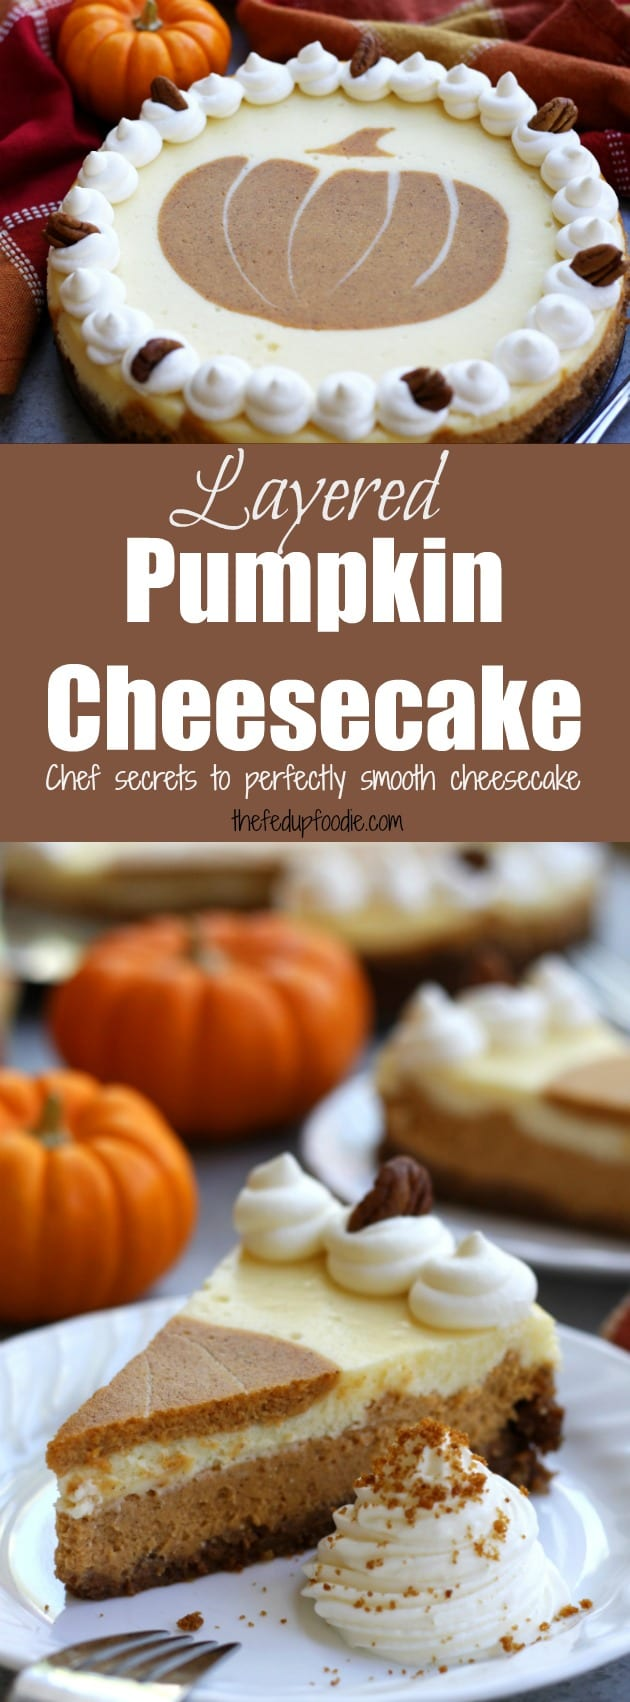 Layered Pumpkin Cheesecake recipe includes chef secrets to perfectly smooth cheesecake and tutorial showing steps to creating gorgeous pumpkin shaped topping. The best pumpkin cheesecake I have ever had and family favorite! Thanksgiving Desserts, easy, baking, Holiday, Fall and gingersnap crust. https://www.thefedupfoodie.com